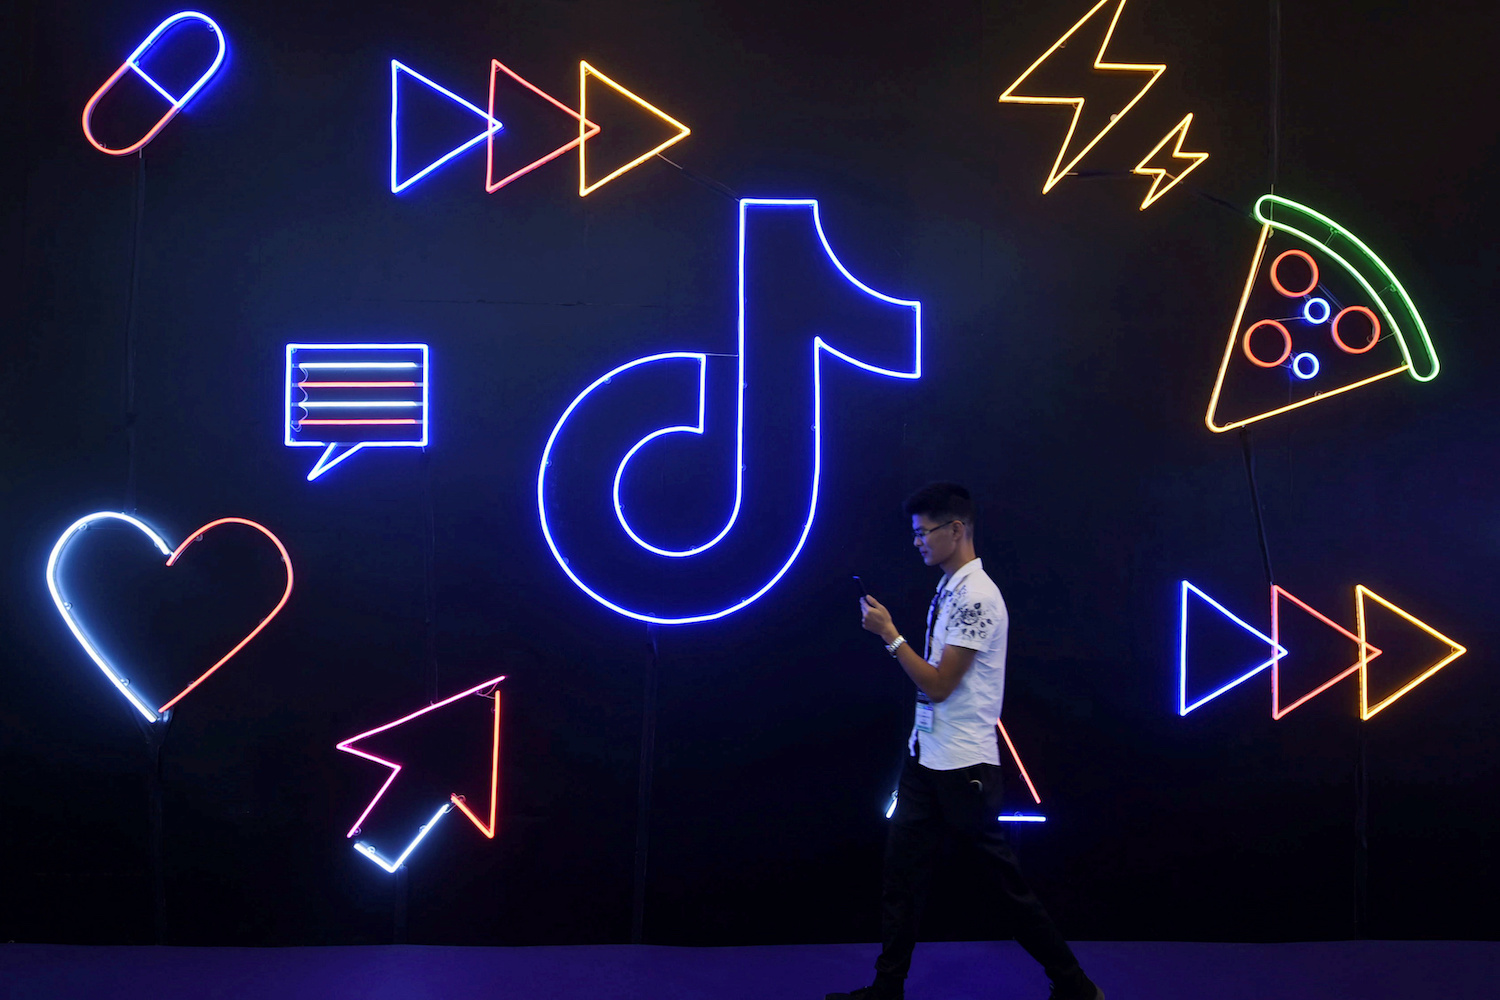 A man walks past a display featuring the TikTok logo at an IT fair in Hangzhou, China in November. (Reuters File Photo)